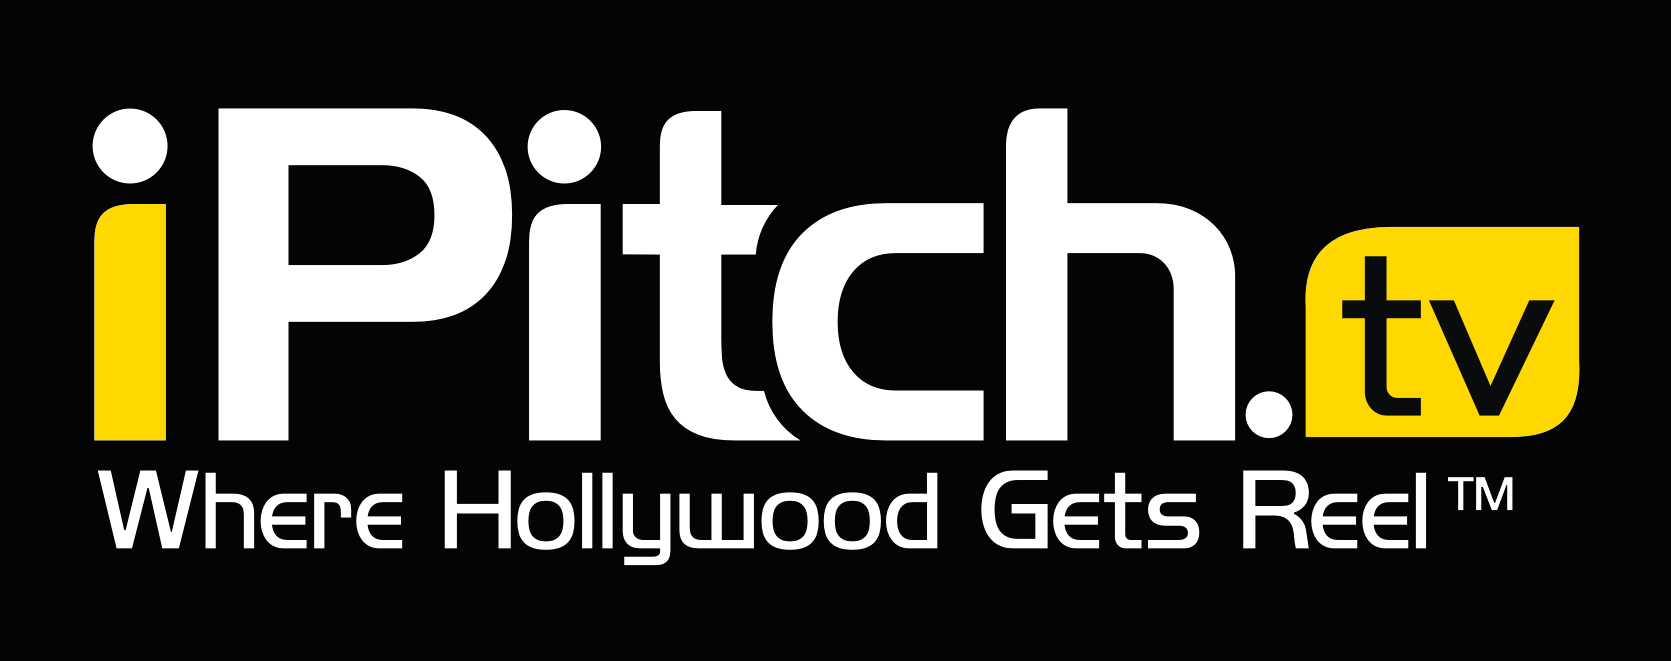 iPitch.tv